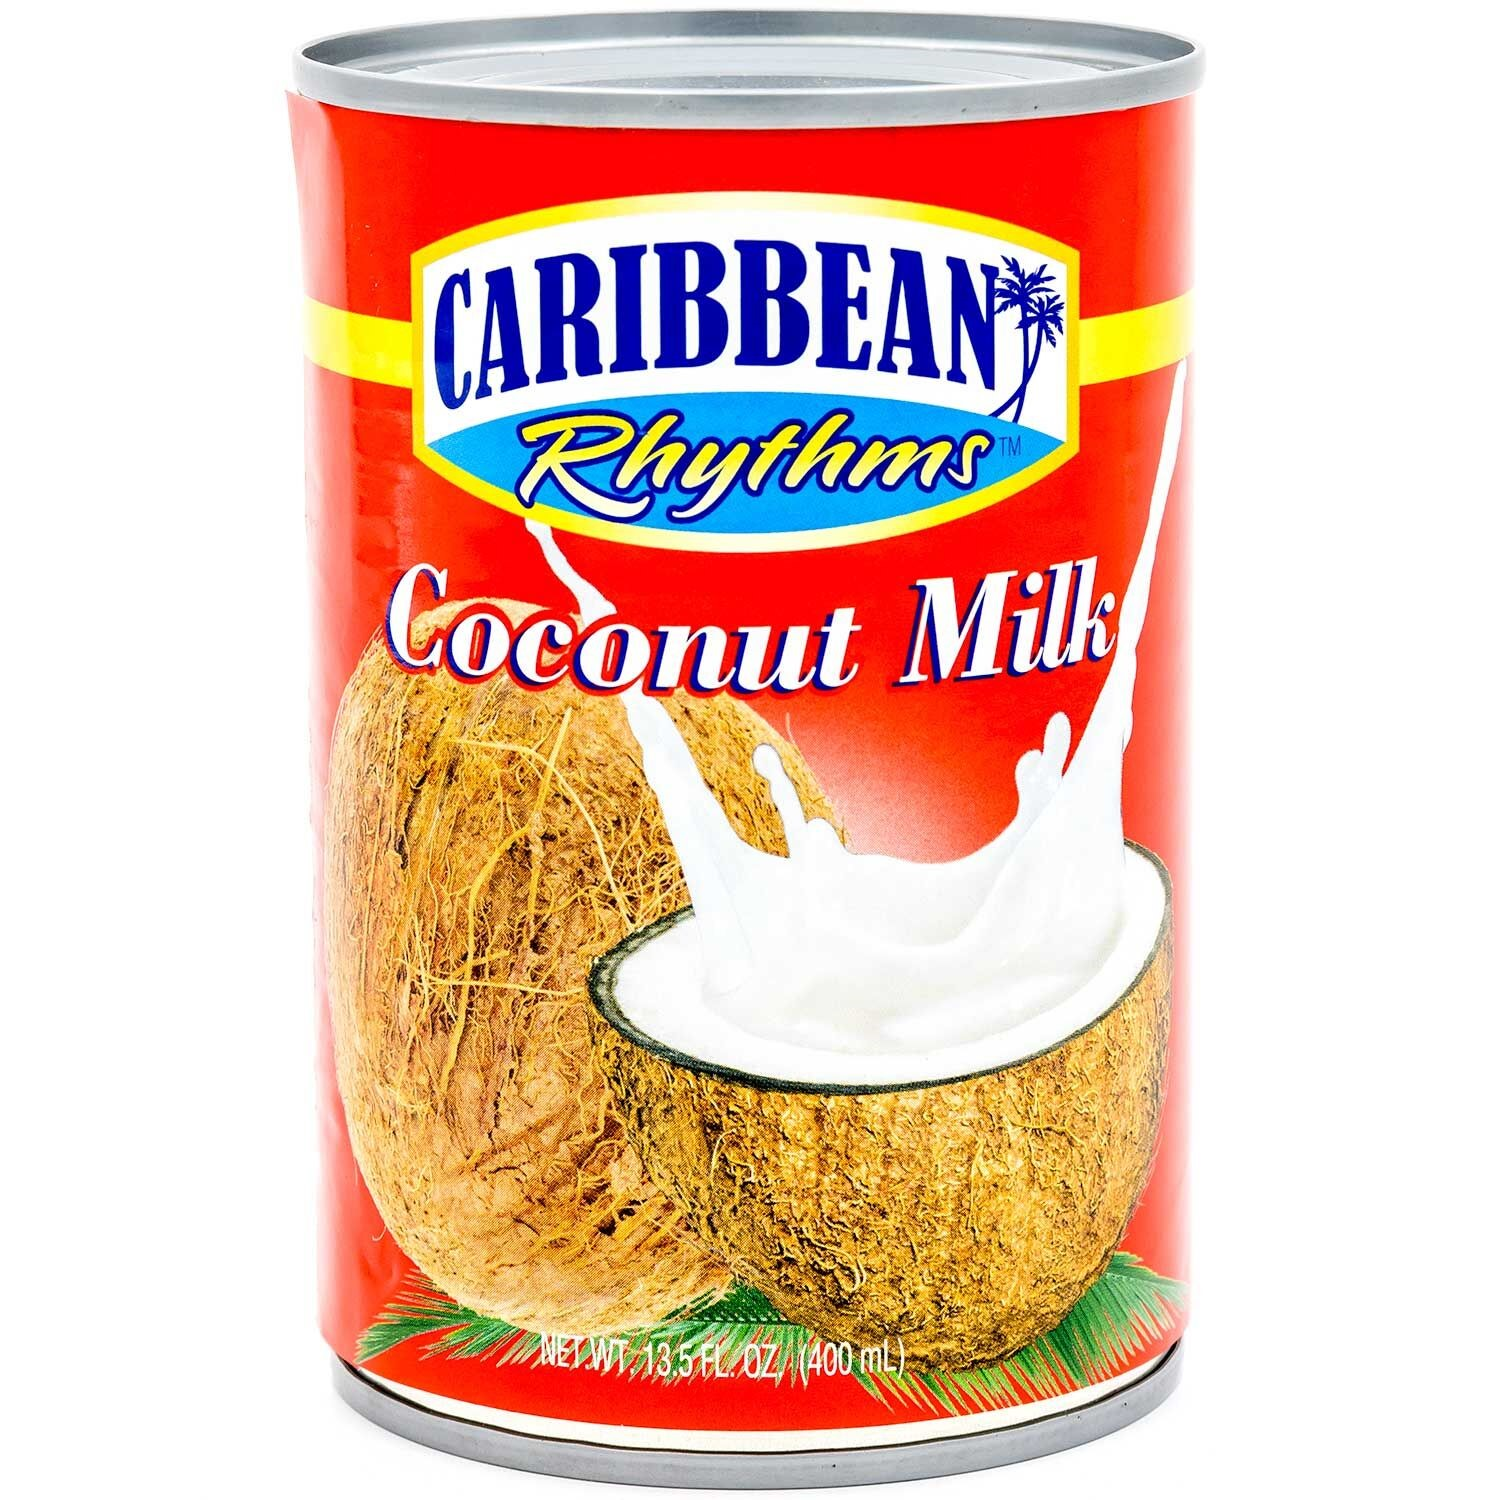 Caribbean Rhythms Coconut Milk, 13.5 fl oz by Caribbean Rhythms